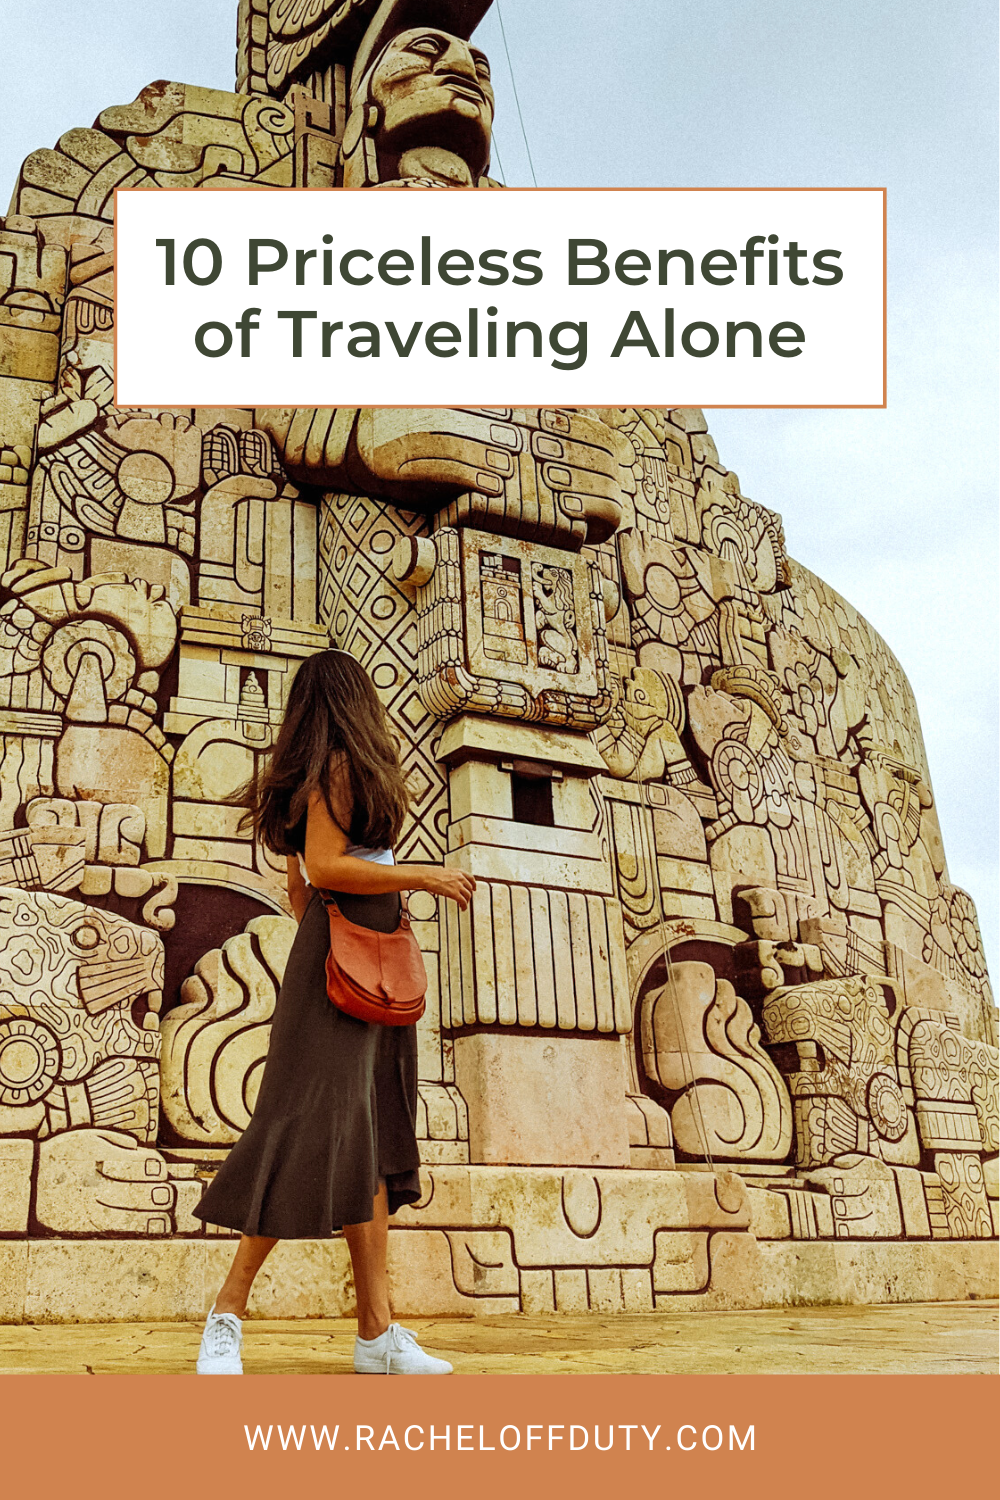 Rachel Off Duty: 10 Priceless Benefits of Traveling Alone